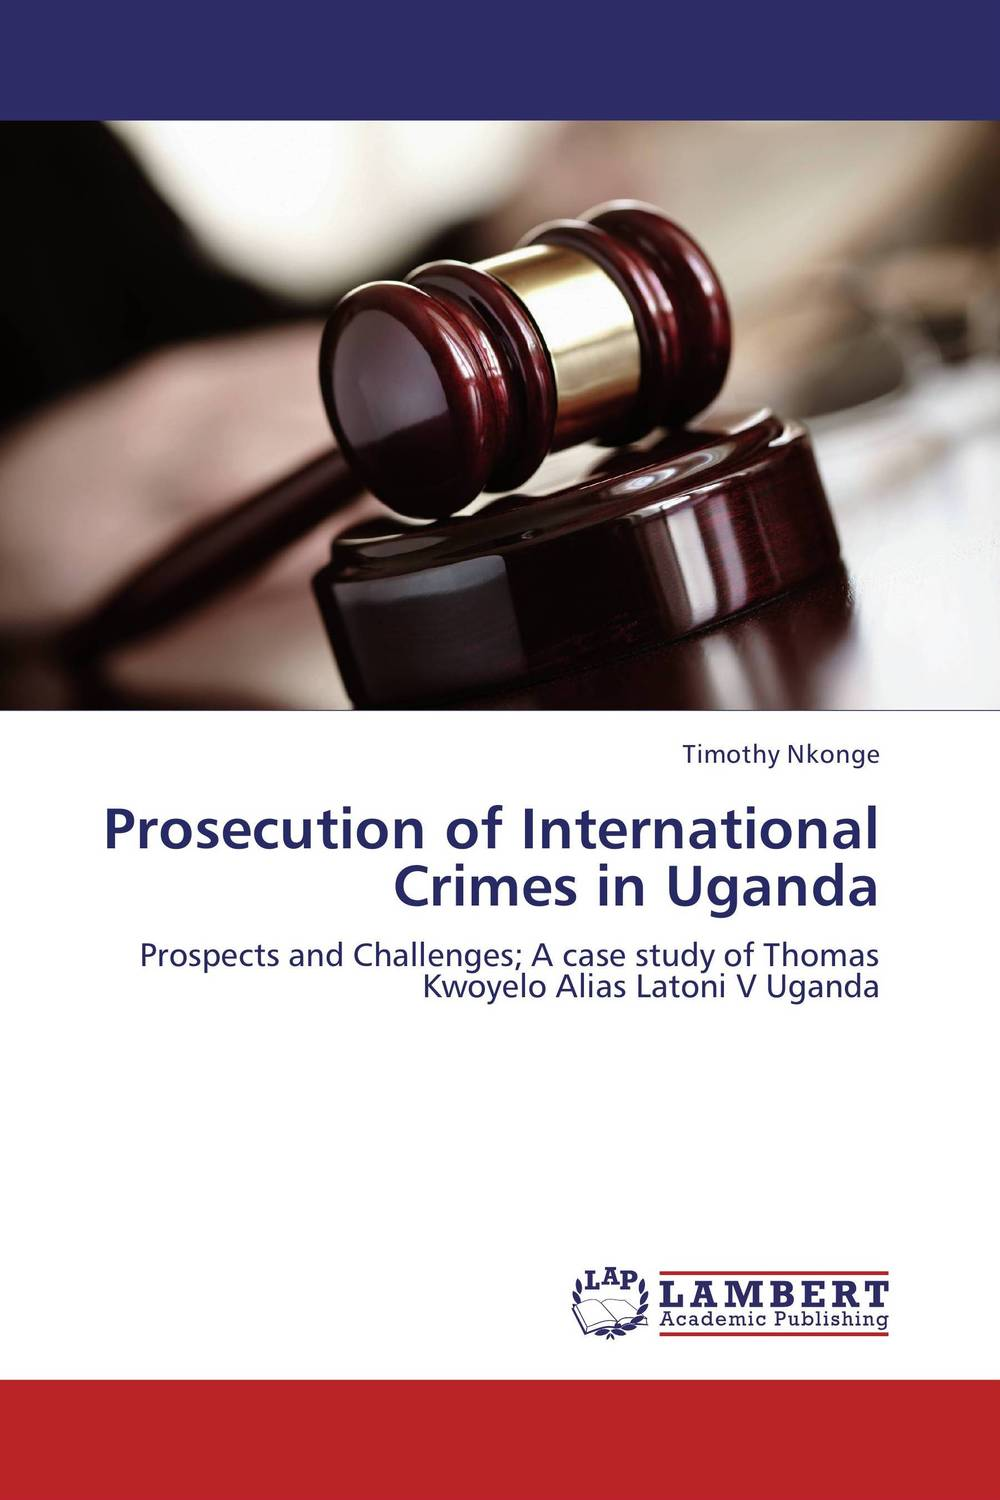 Prosecution of International Crimes in Uganda sam stewart mutabazi mob justice in uganda lack of faith in the judicial process